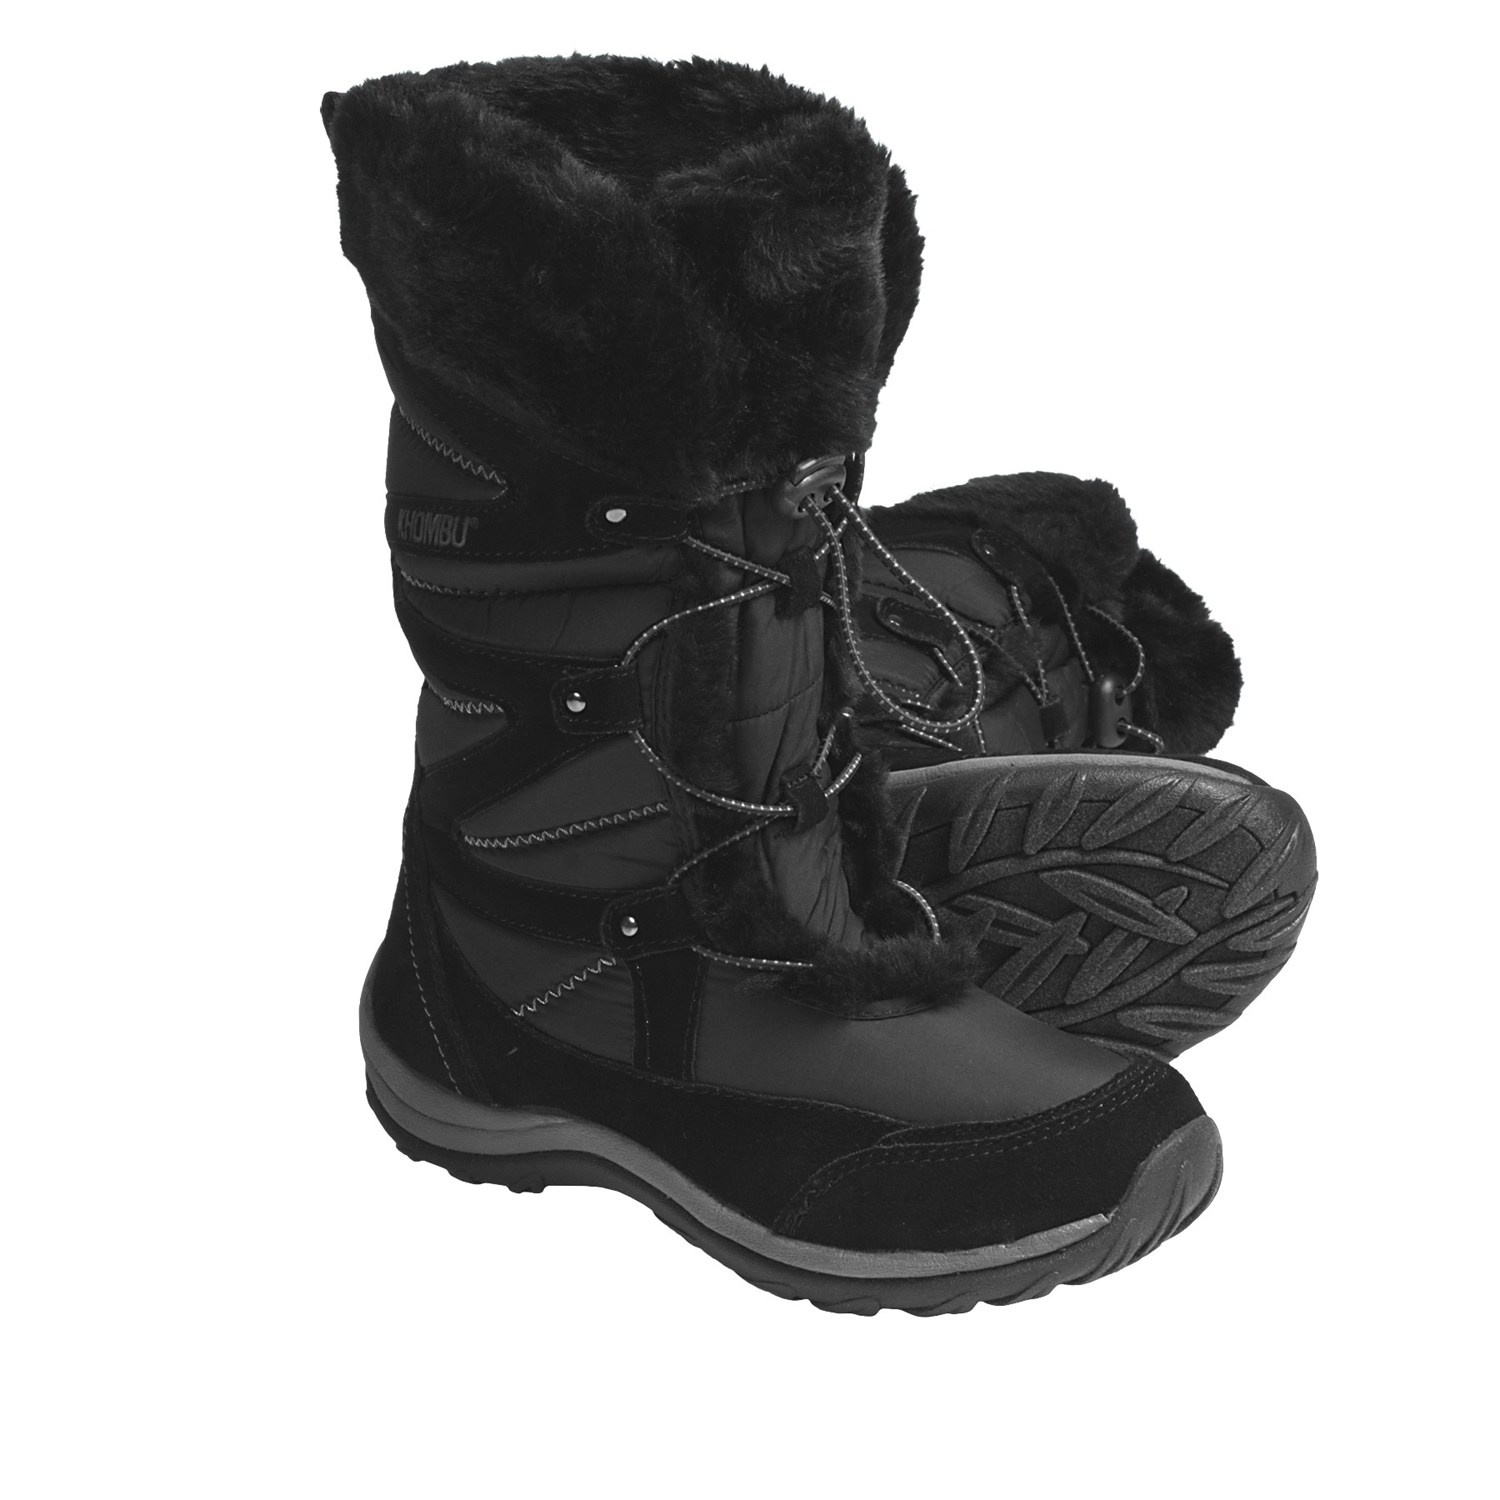 Khombu Ladies Marker Women's Winter Boots - Size: 6 - Black ...